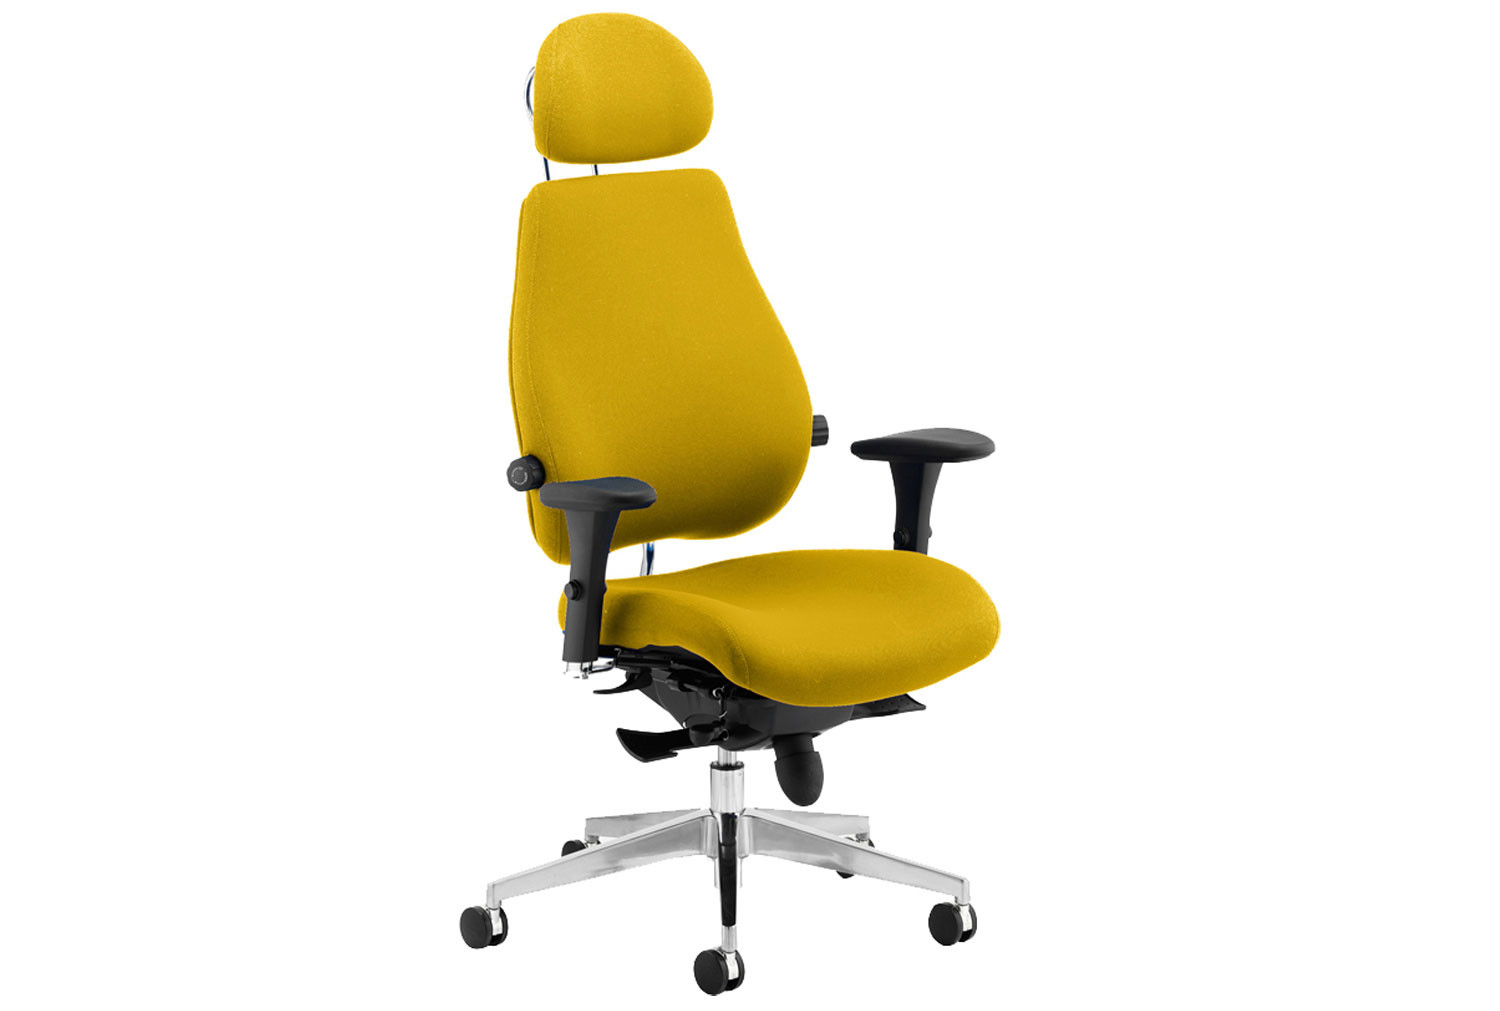 Praktikos Ultimate Fabric Ergonomic Chair With Headrest